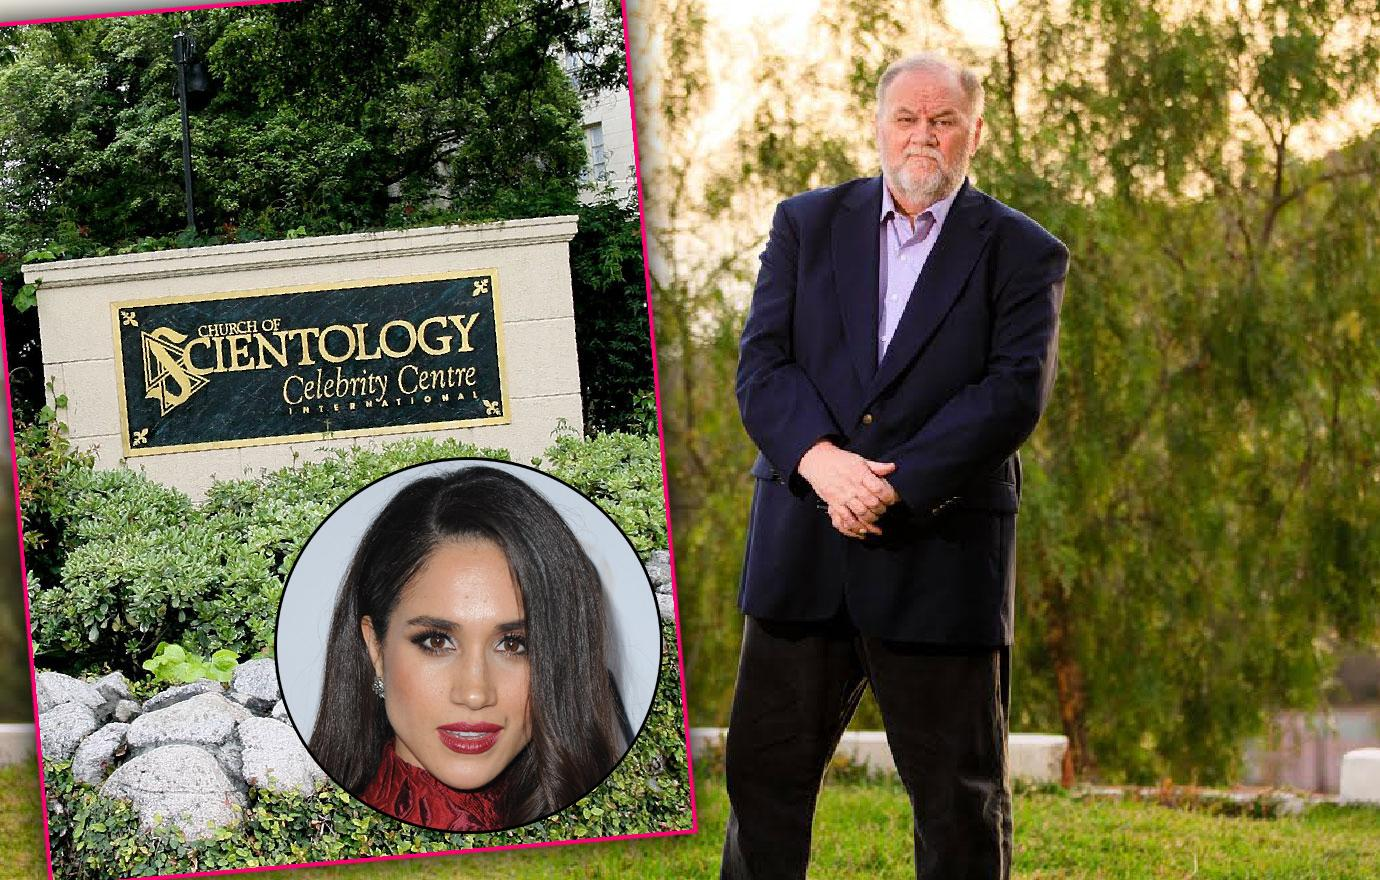 //thomas markle compares royal family to scientologists pp